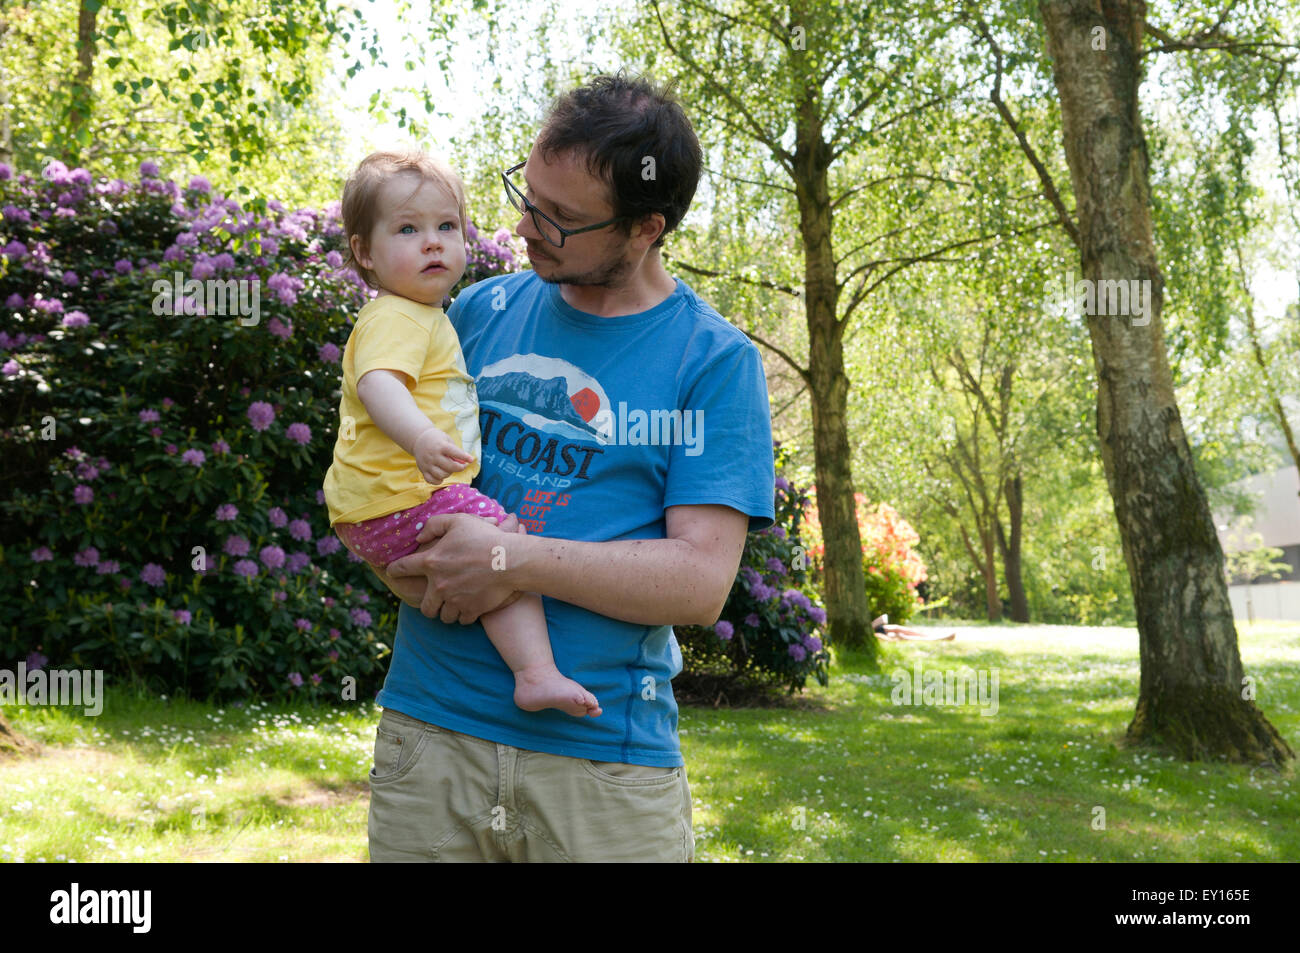 Baby girl being held by her father looking tearful - Stock Image